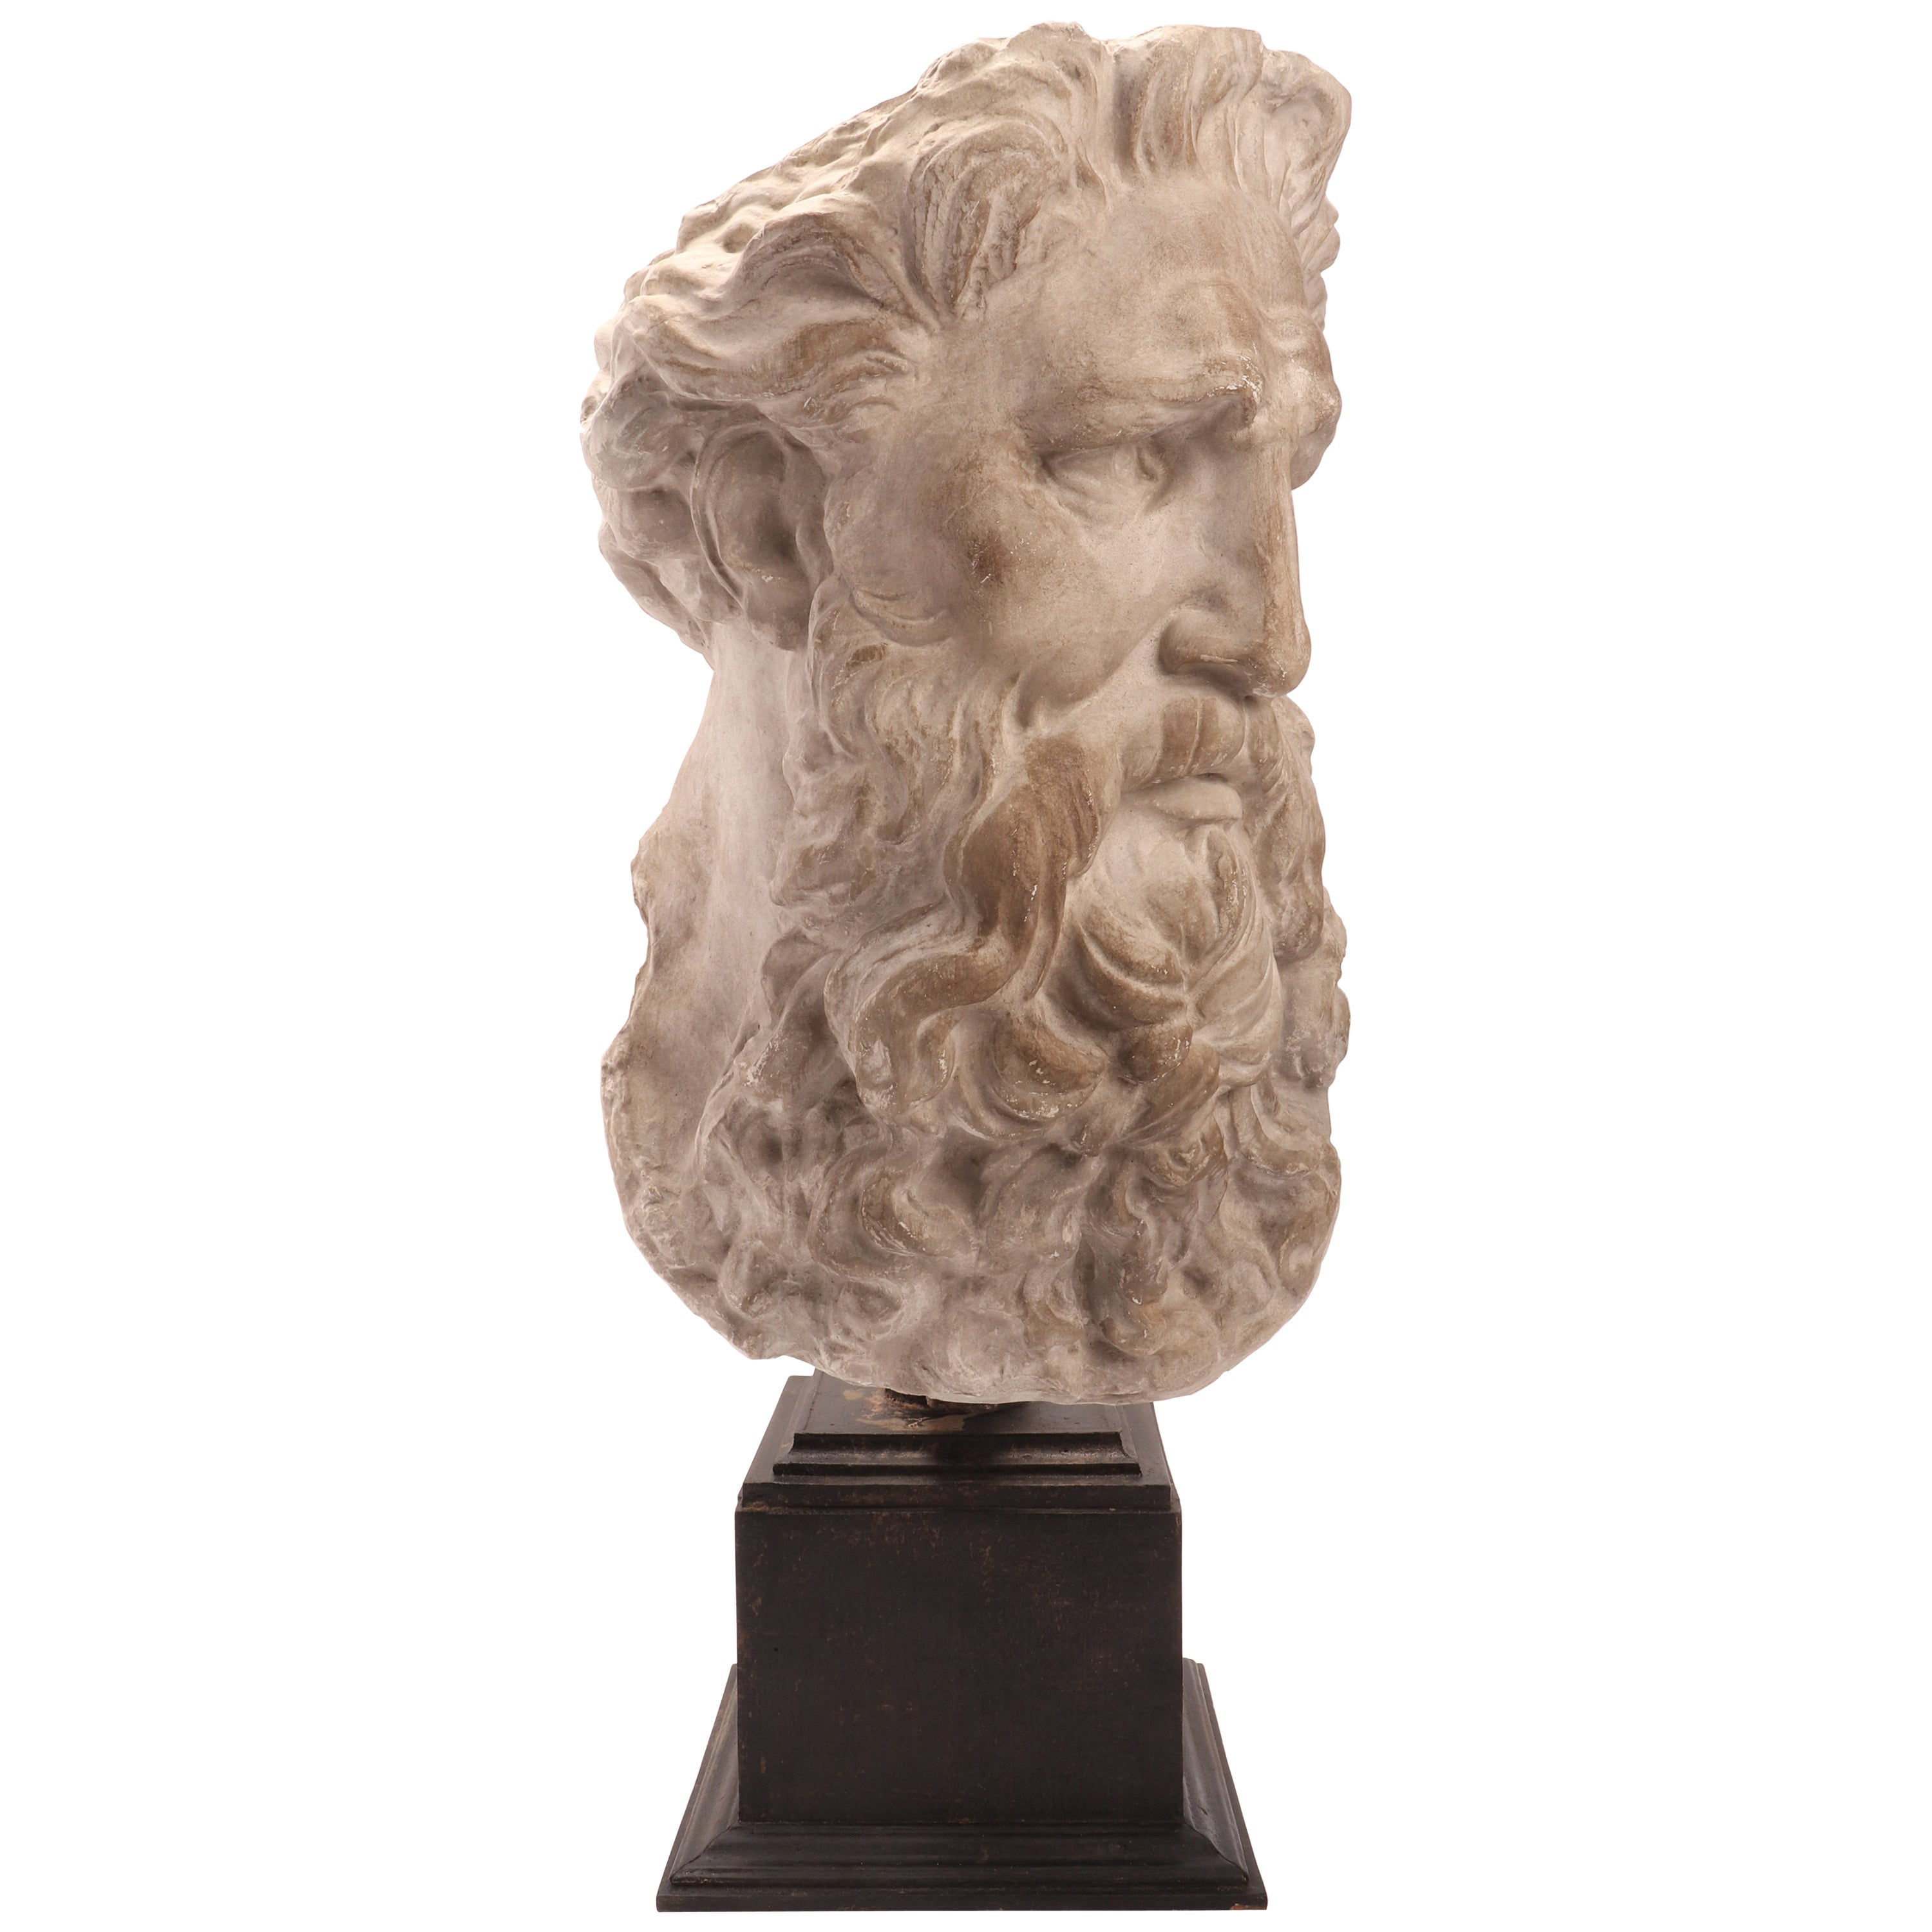 Plaster Cast the Head of Neptune, Italy, 1890